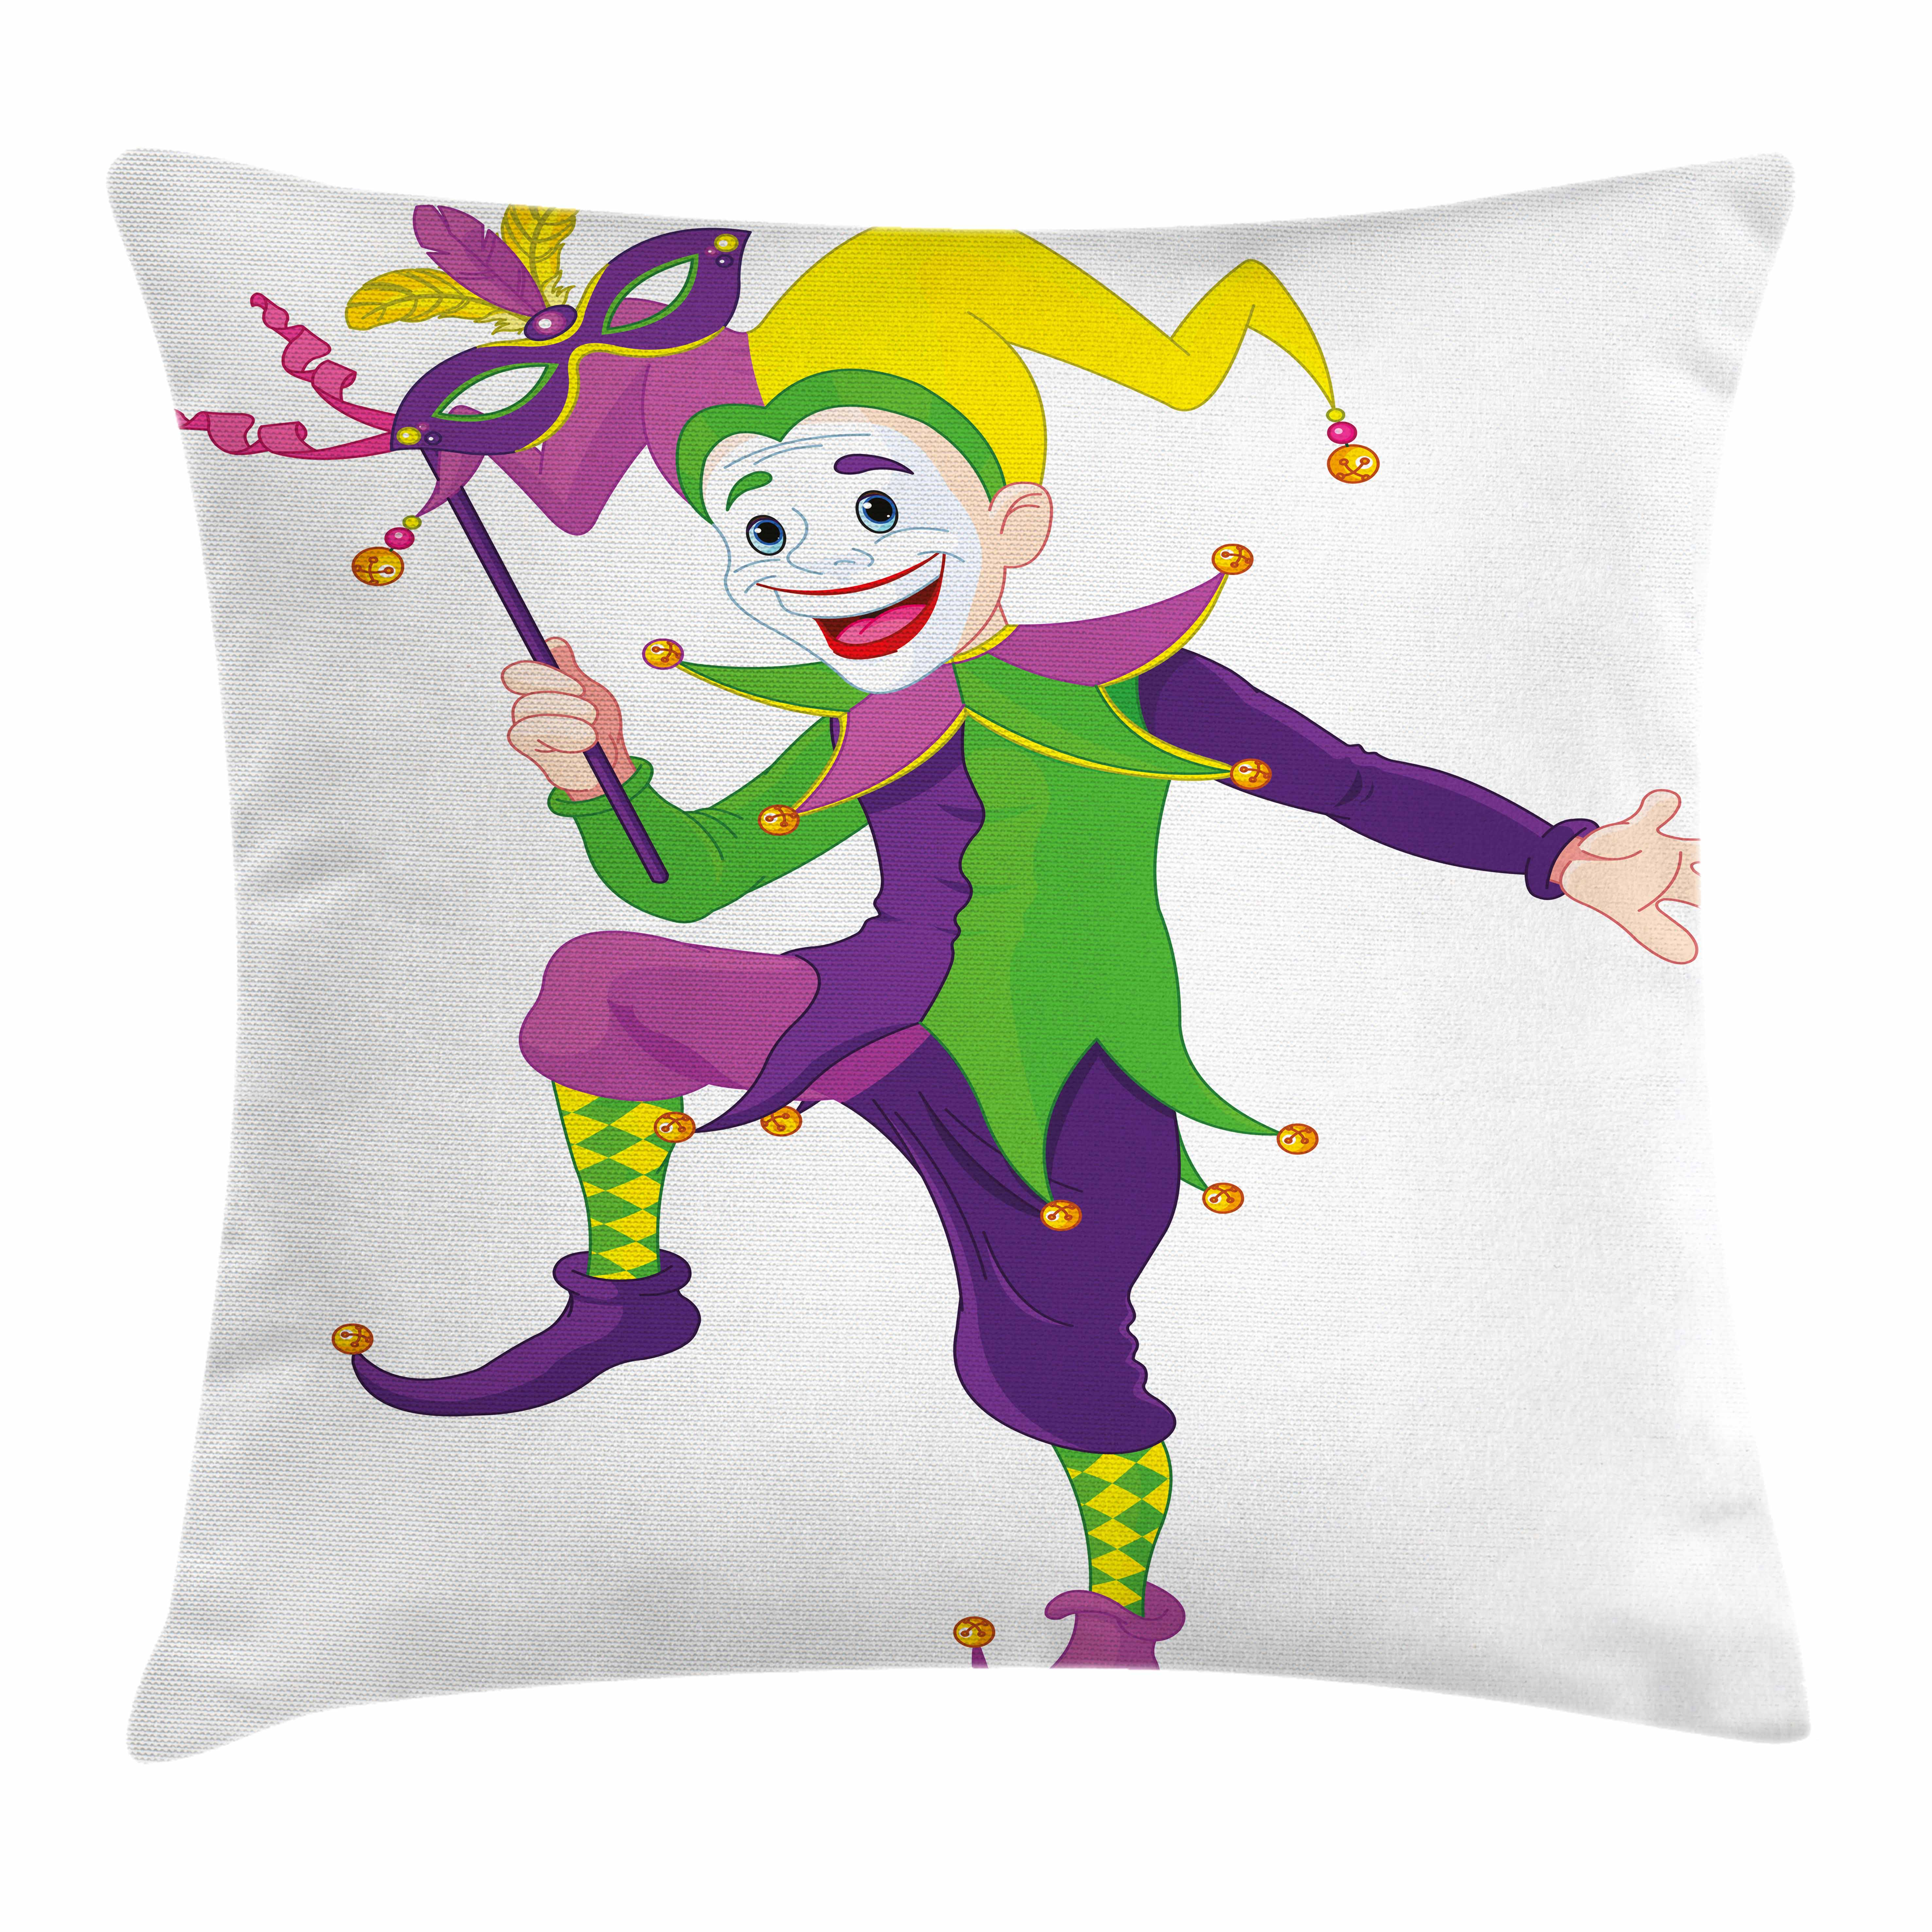 Mardi Gras Throw Pillow Cushion Cover, Cartoon Style Jester in Iconic Costume with Mask Happy Dancing Party Figure, Decorative Square Accent Pillow Case, 18 X 18 Inches, Multicolor, by Ambesonne